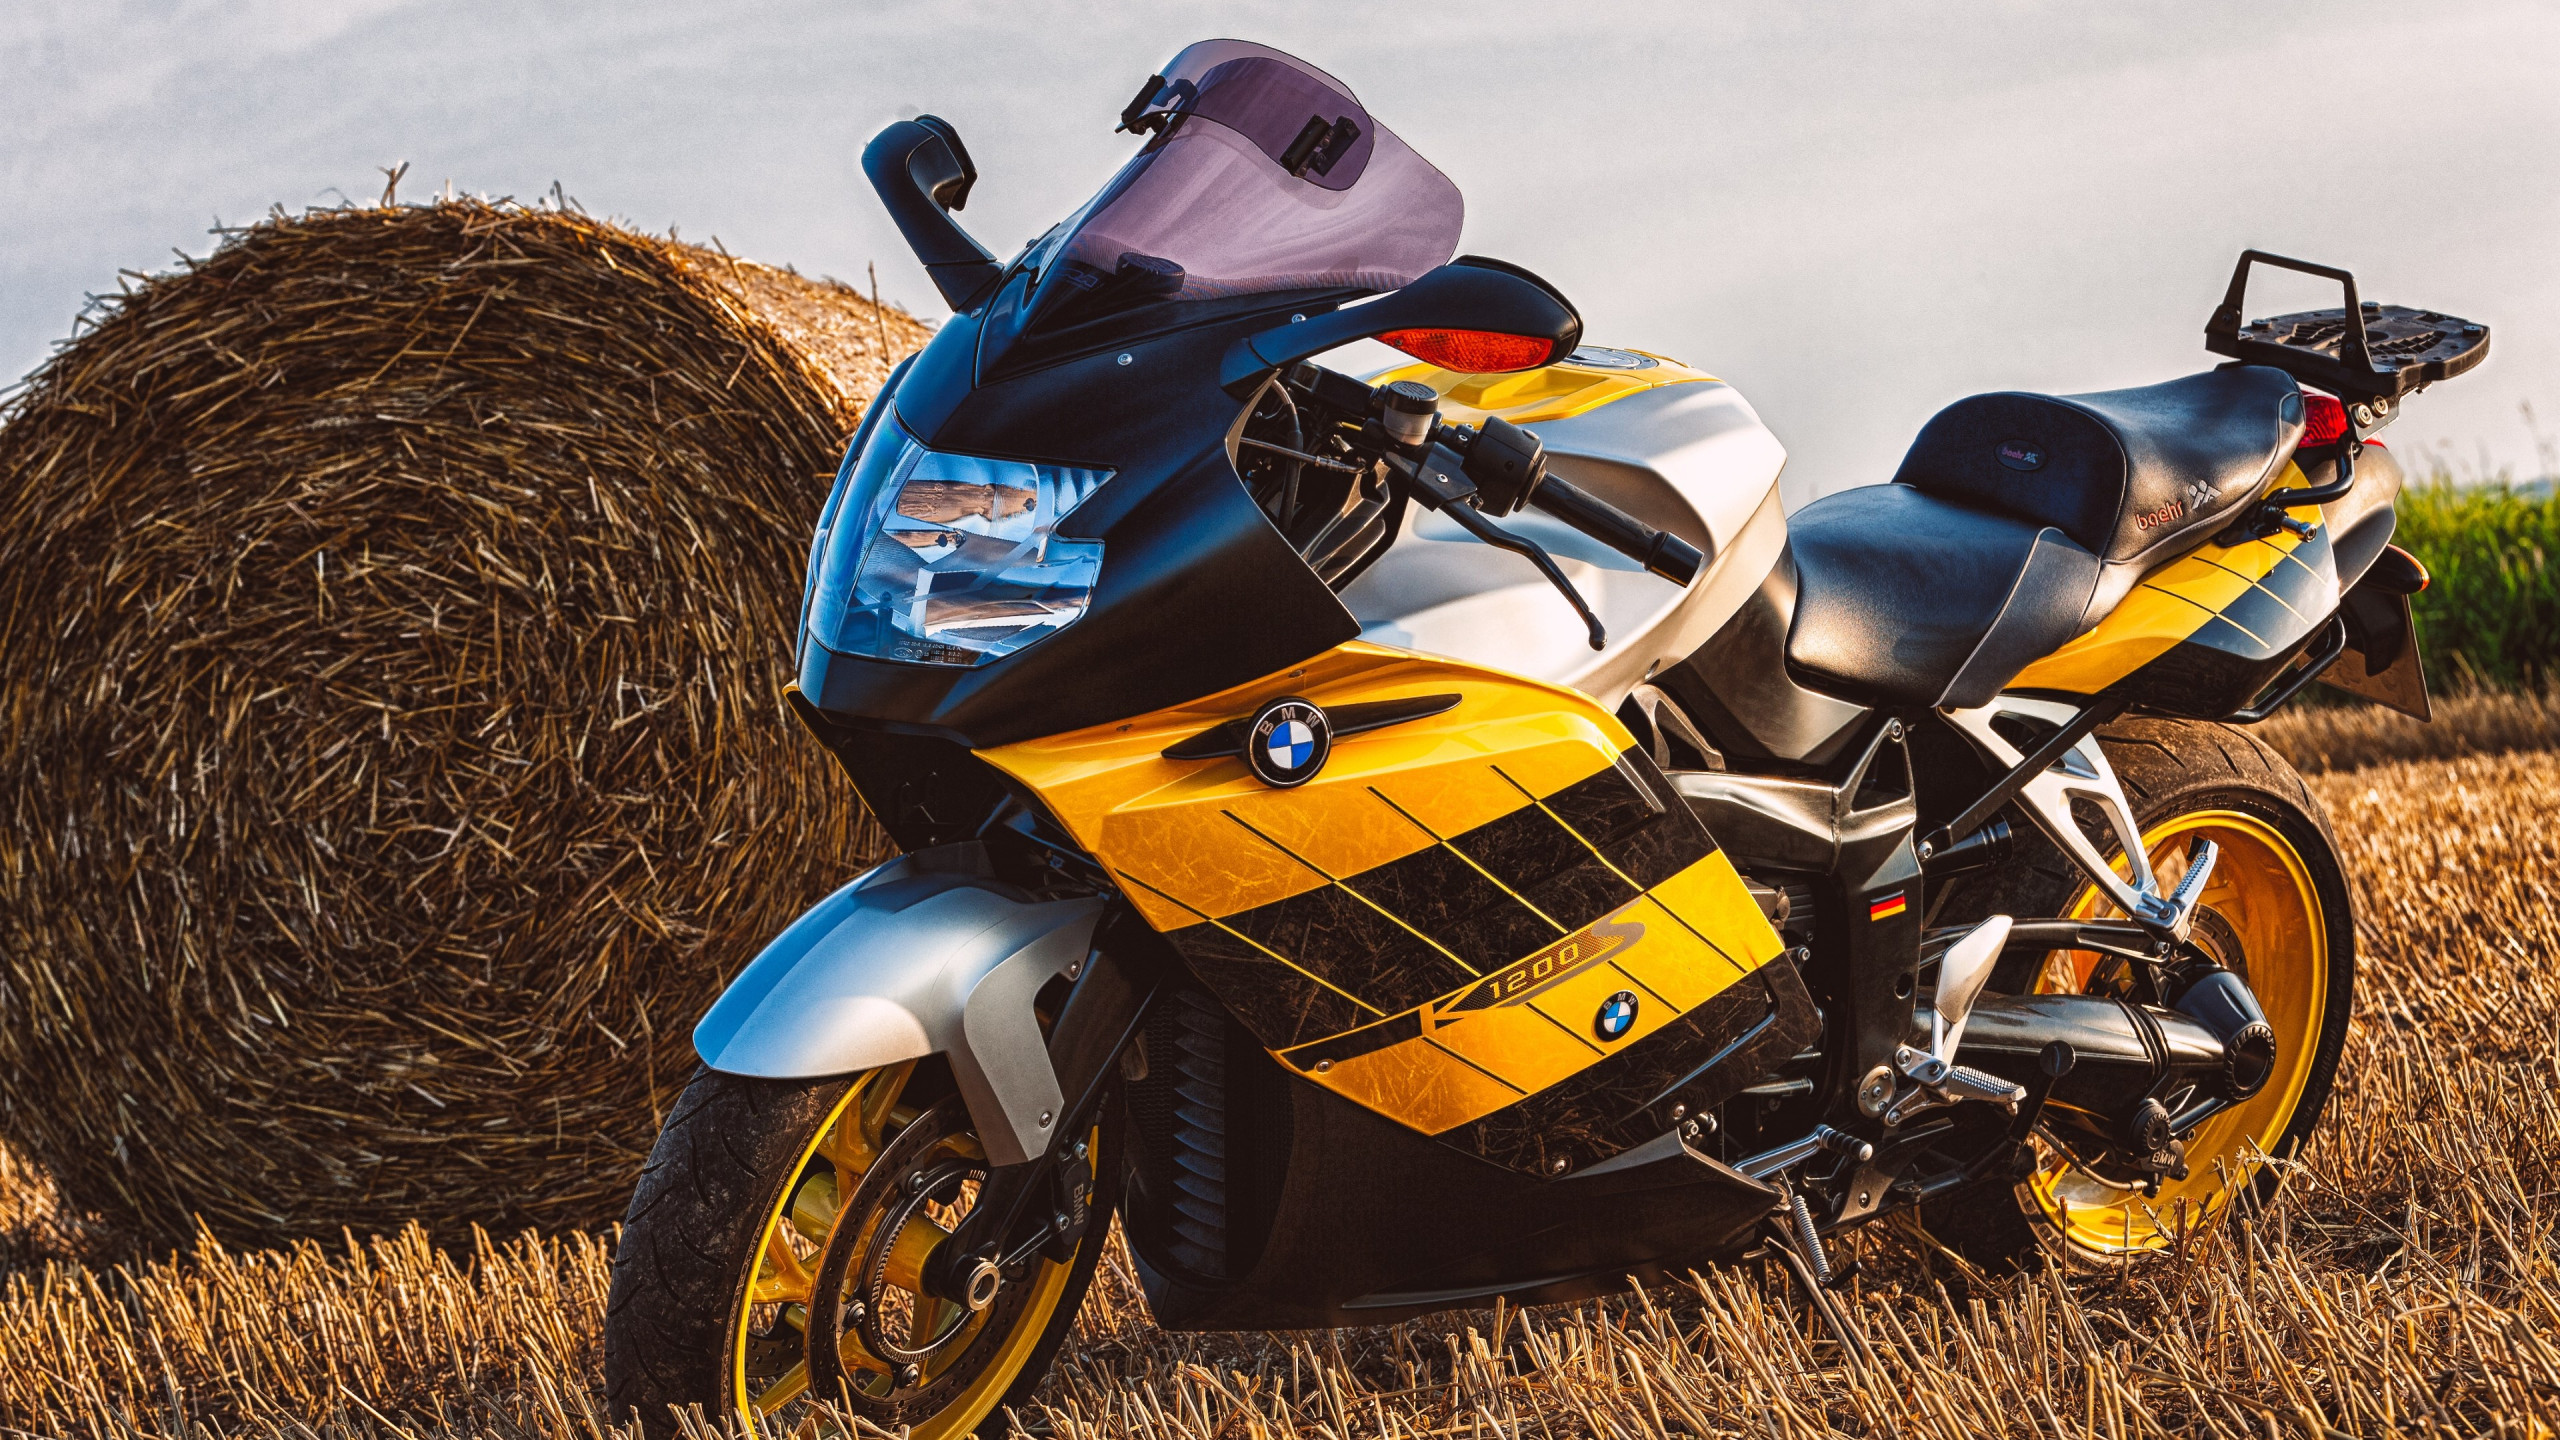 BMW Motorcycle K1200S wallpaper 2560x1440